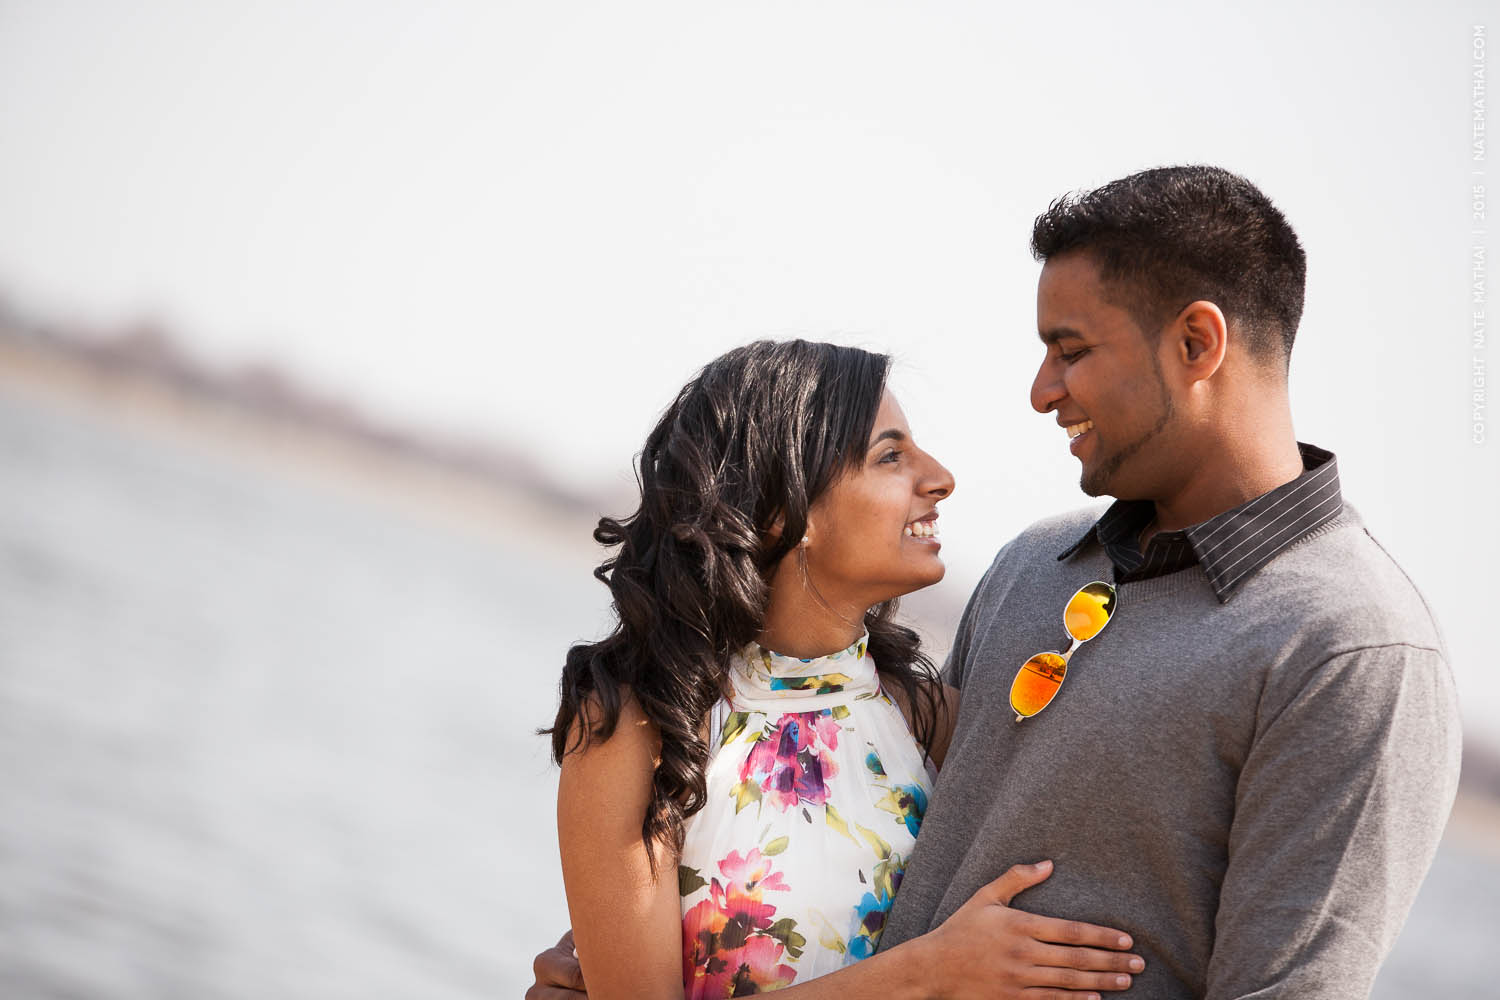 great photography for Project15 by chicago wedding photographer nate mathai